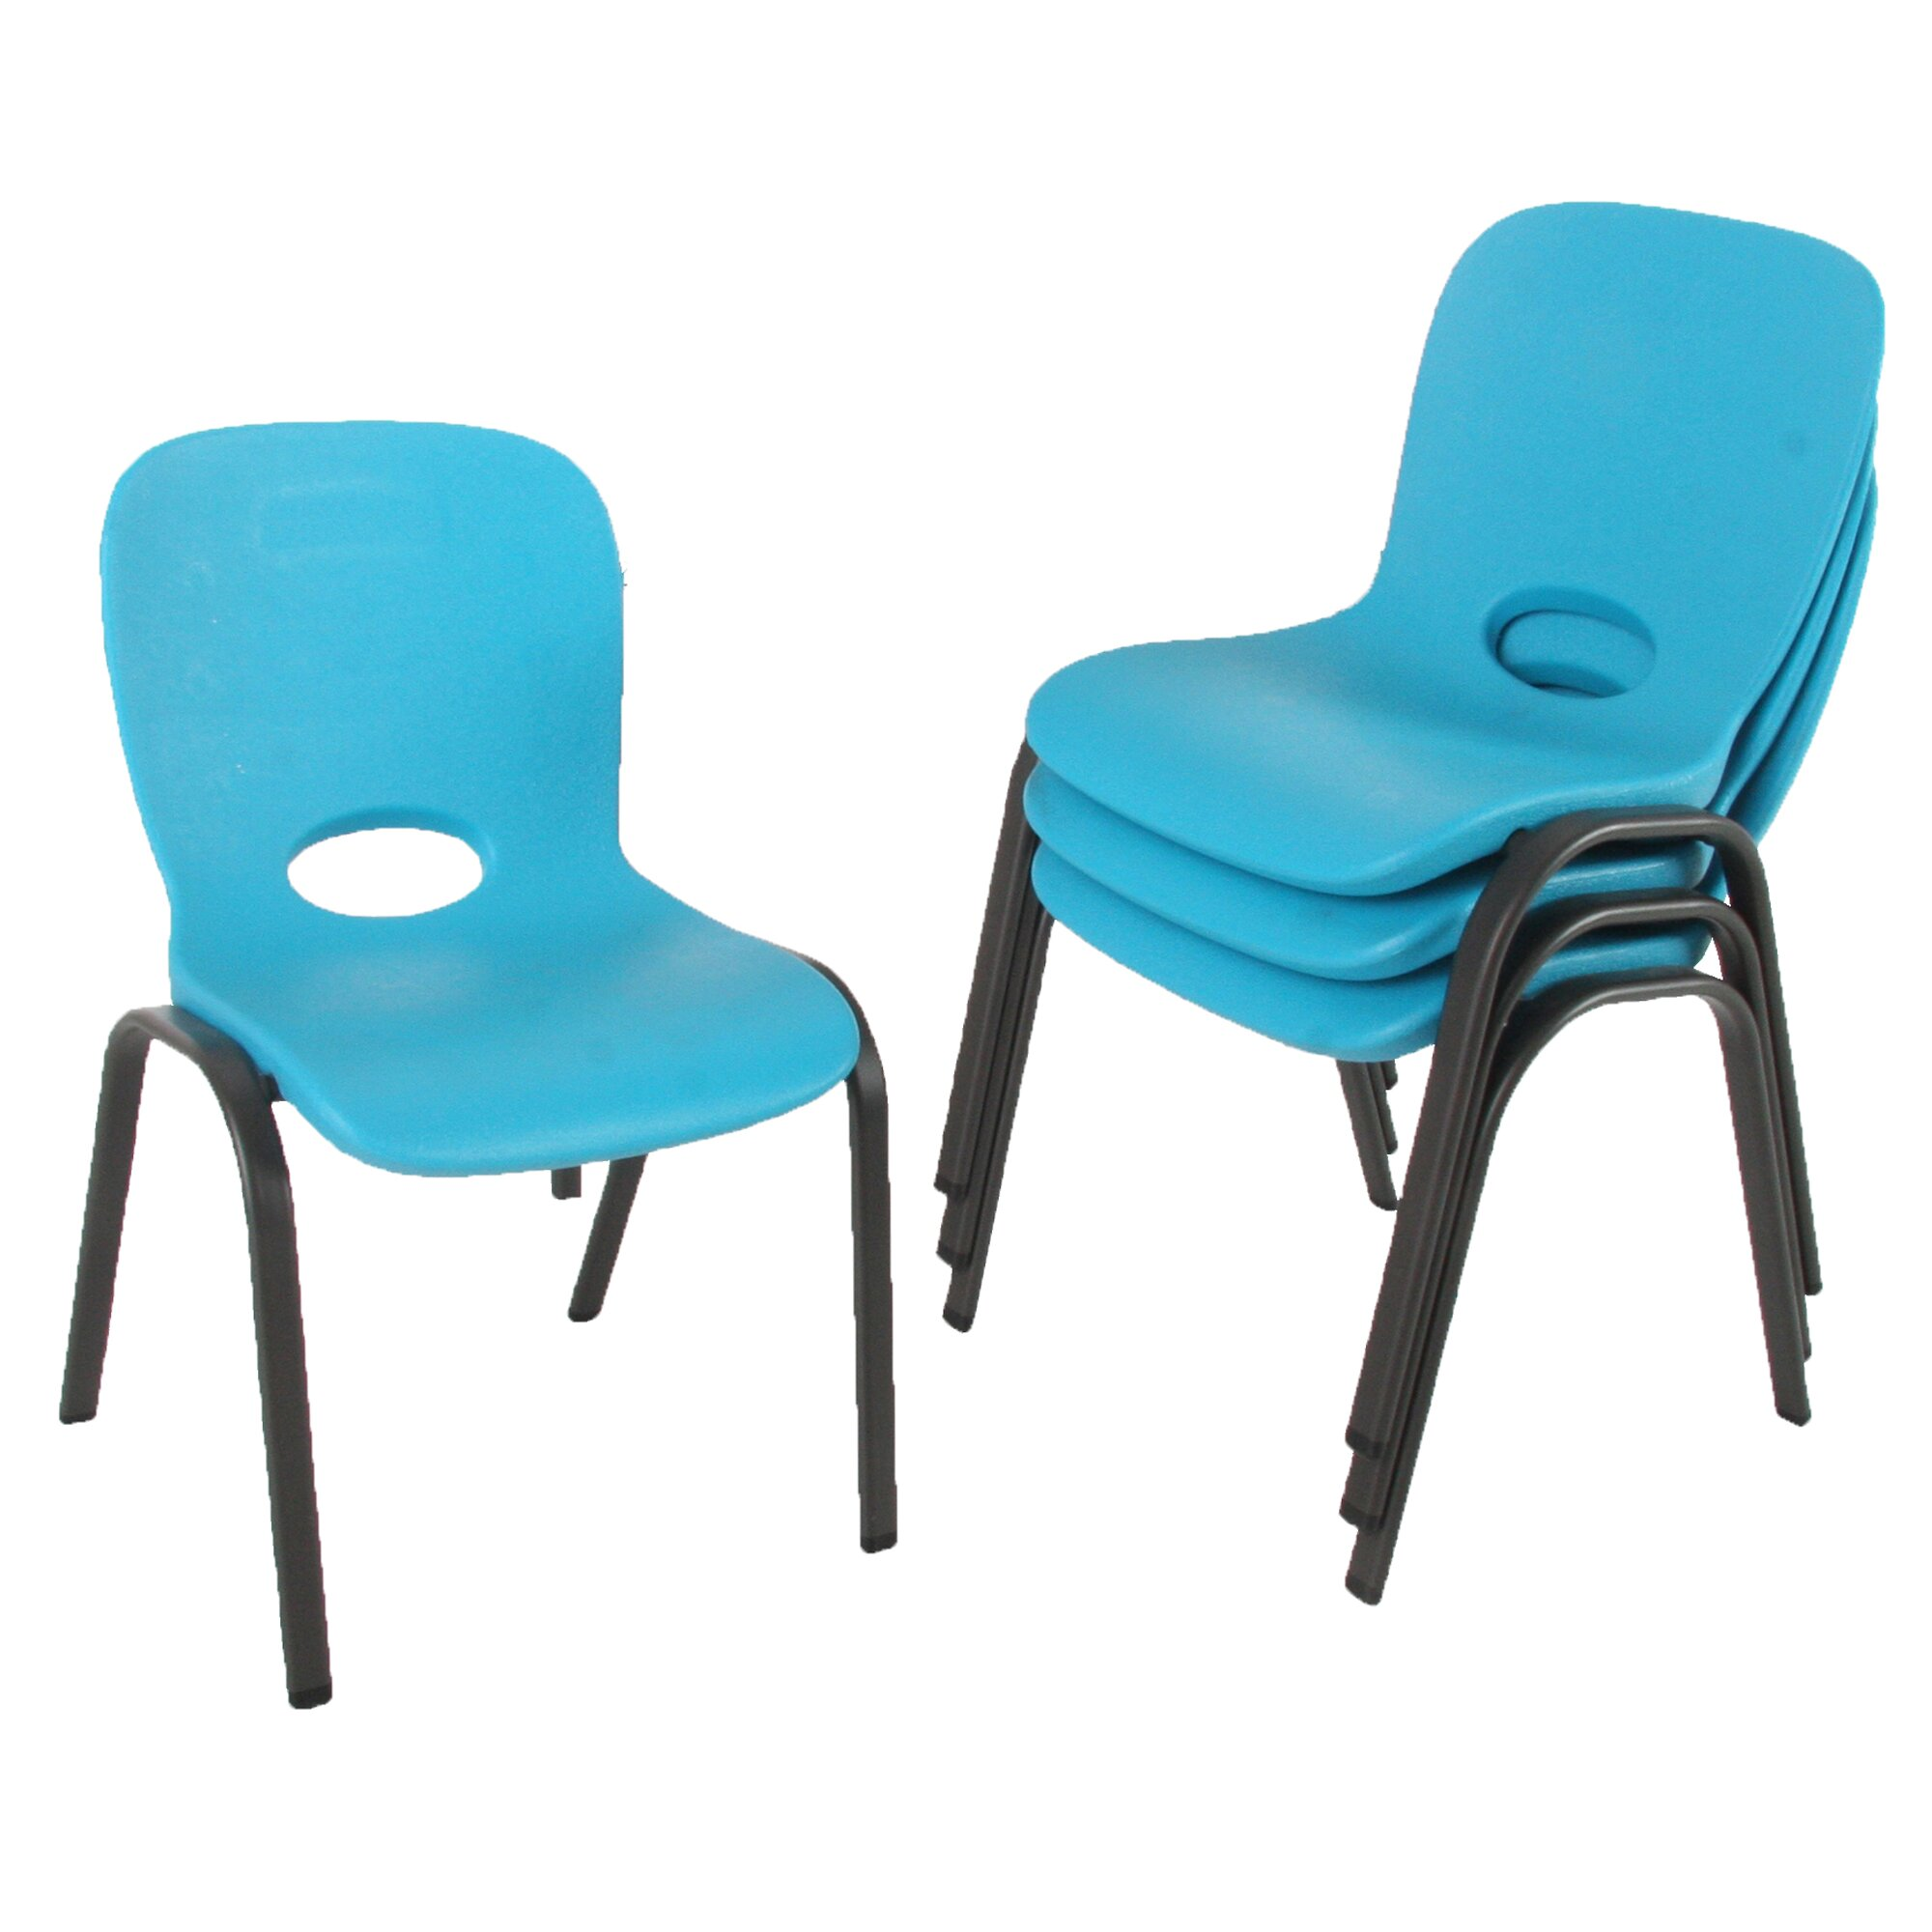 Lifetime Armeless Contemporary Childrens Stacking Chair